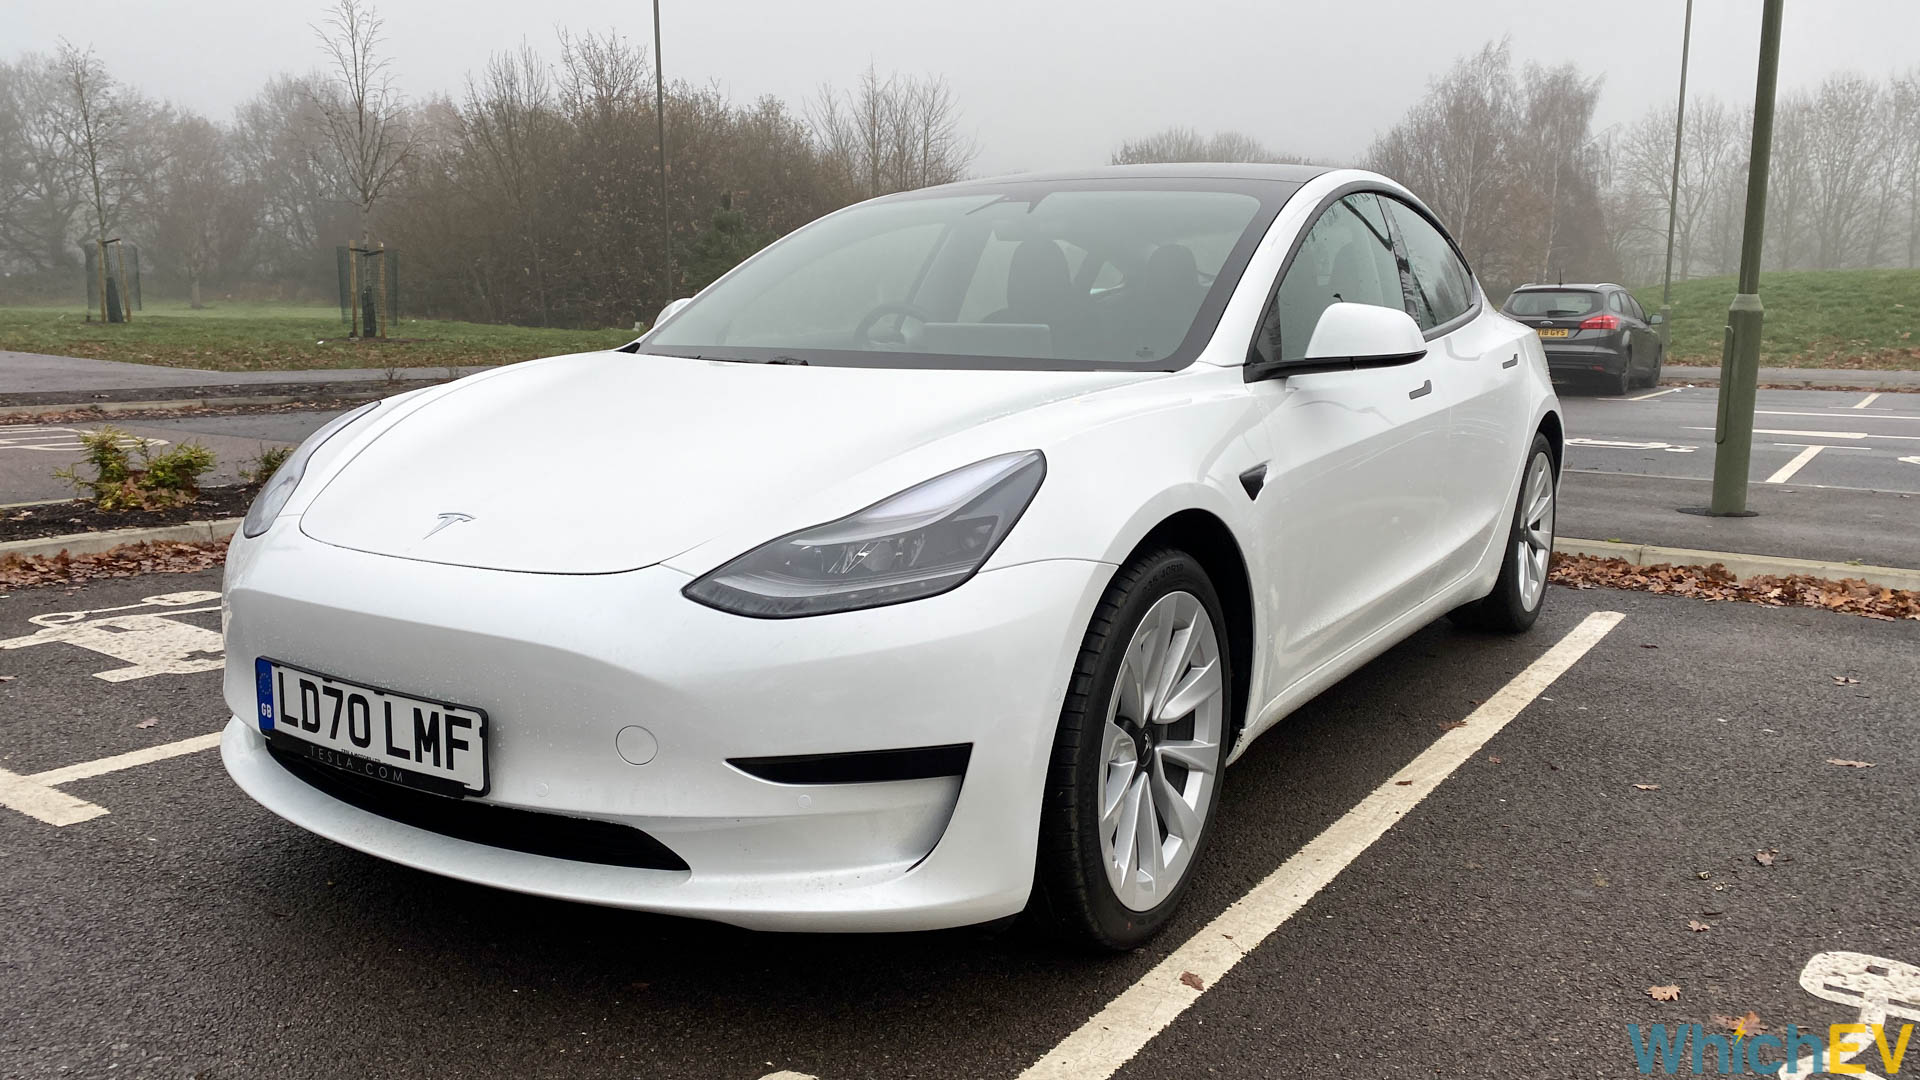 Tesla $25,000 'Model 2' could be gearing up for production in China already